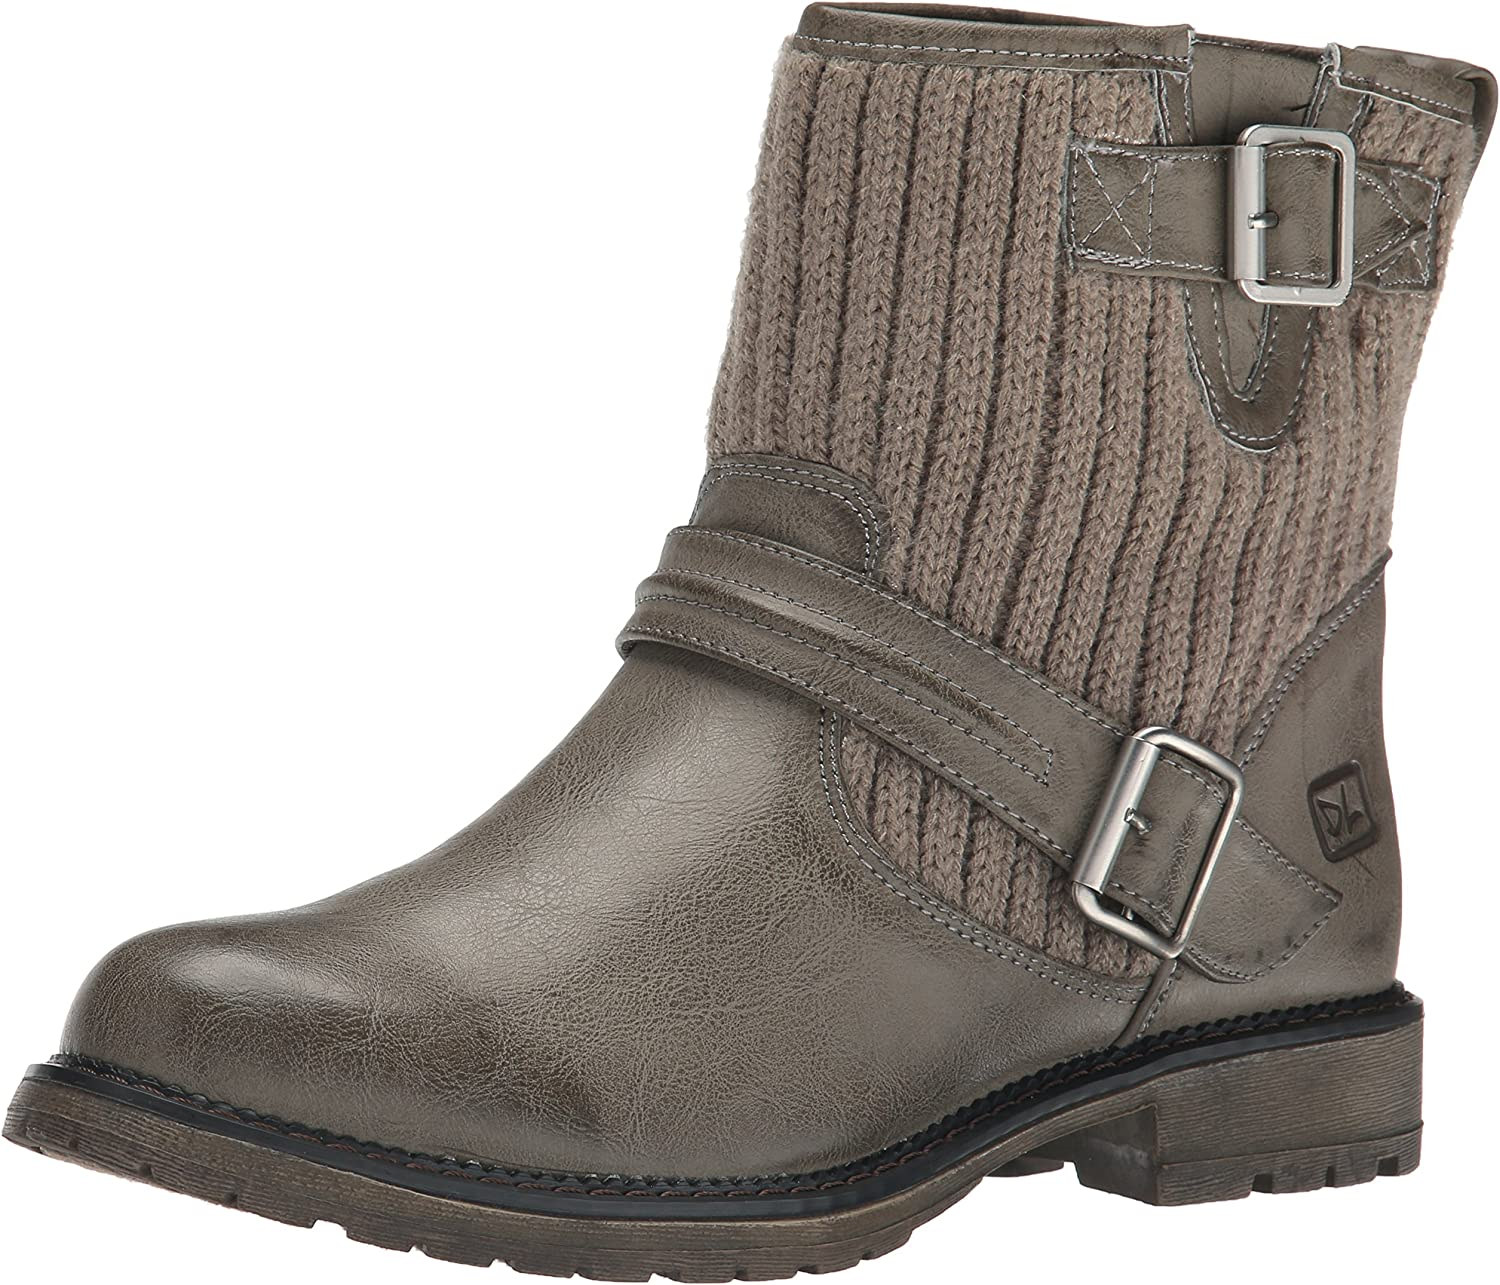 Dirty Laundry by Chinese Laundry Women's Roger That Boot